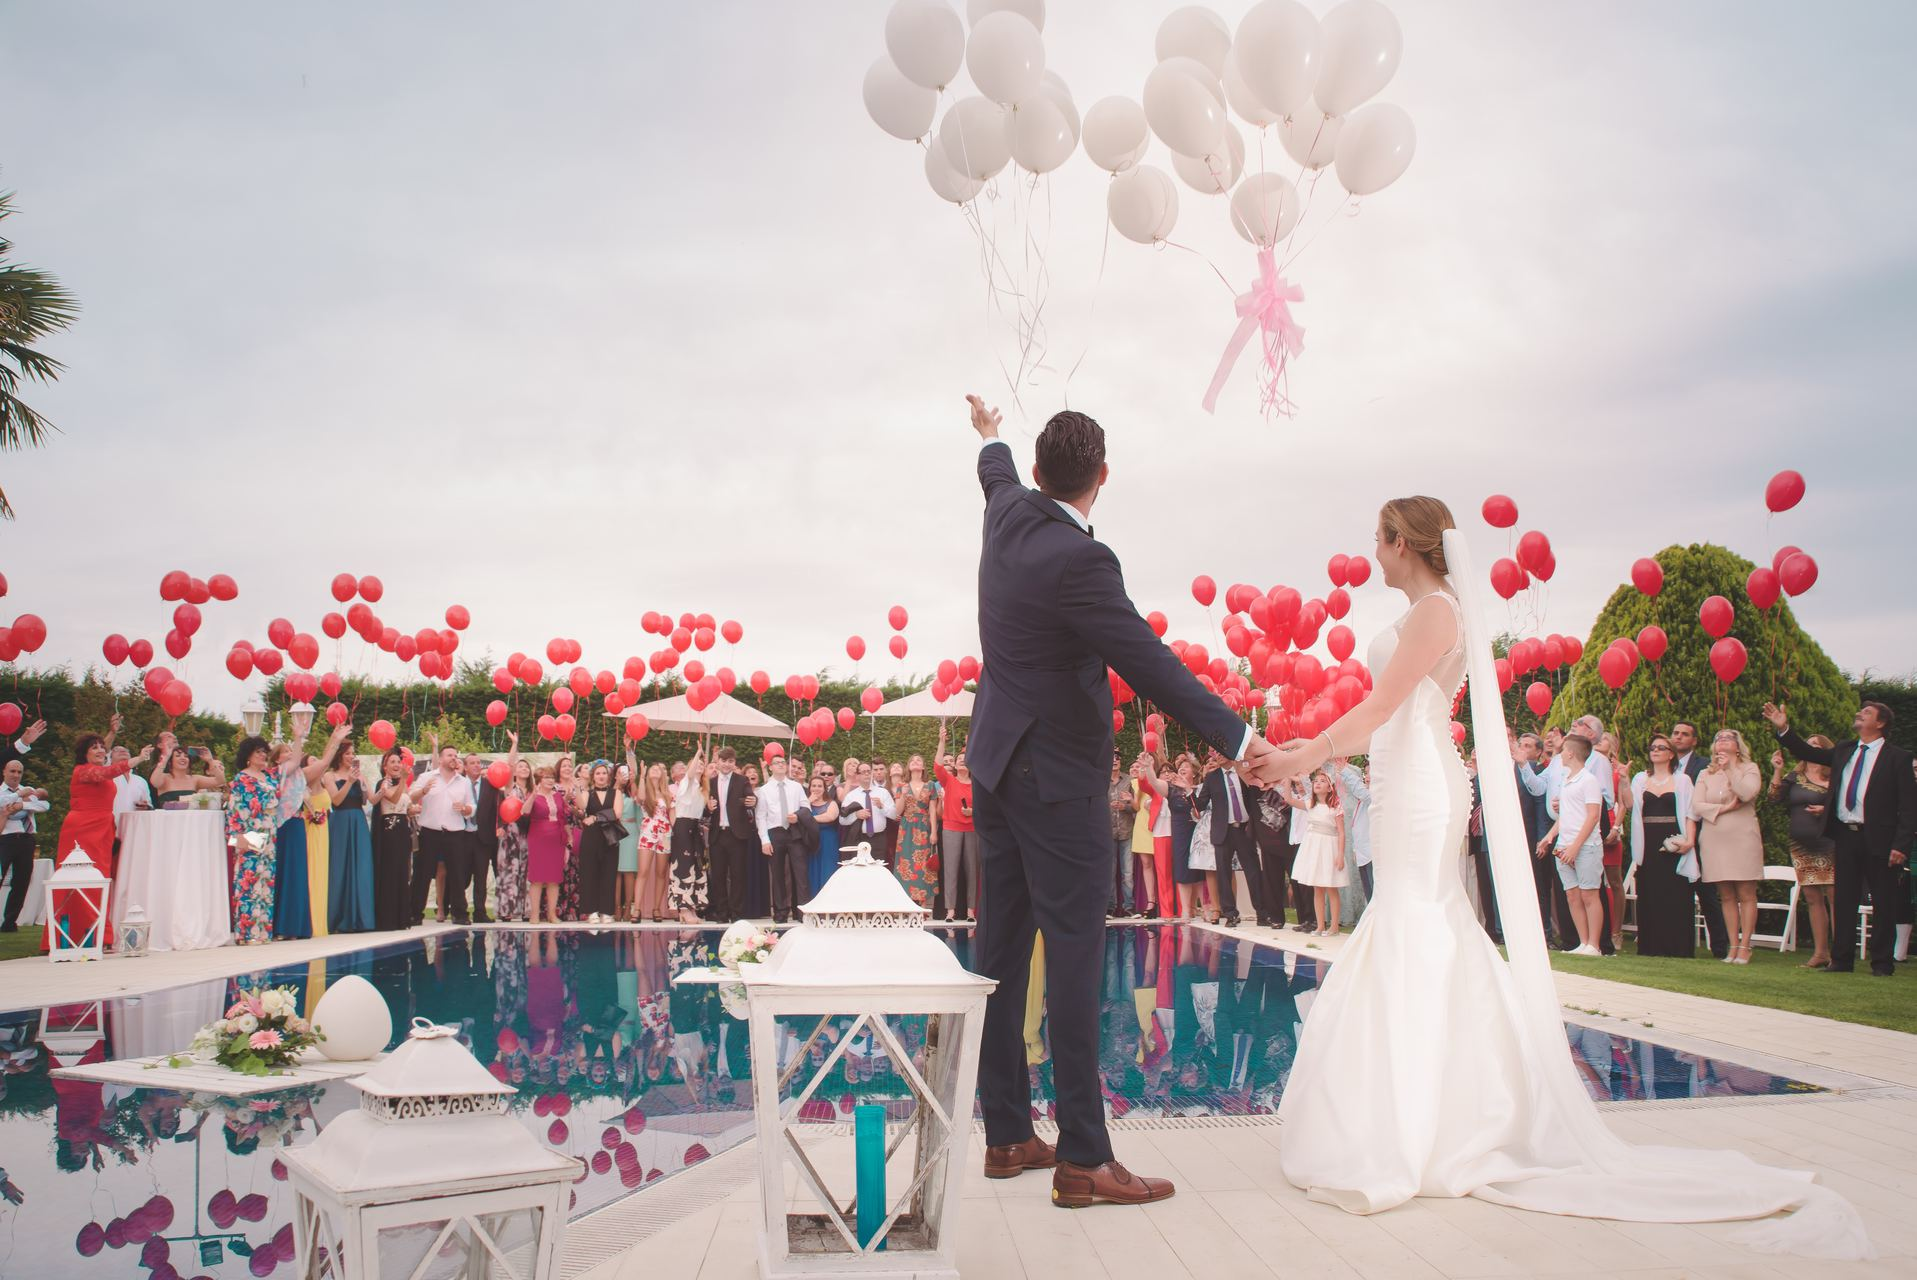 5 tips to prevent your wedding guest list from getting out of hand